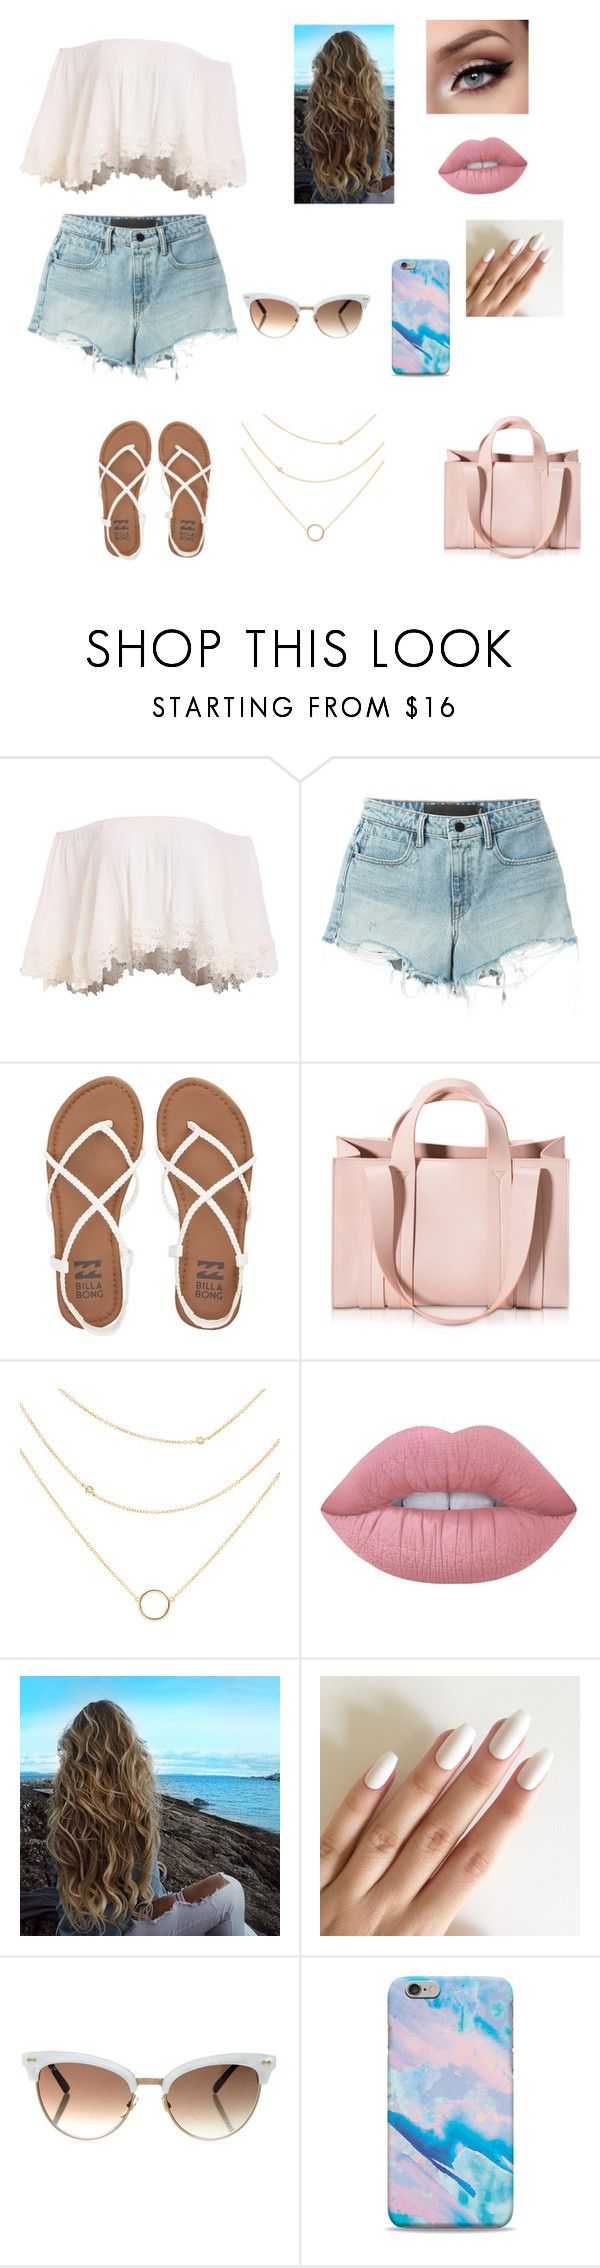 """Untitled #155"" by lilsurfer ❤ liked on Polyvore featuring T By Alexander Wang, Billabong, Corto Moltedo and Lime Crime"